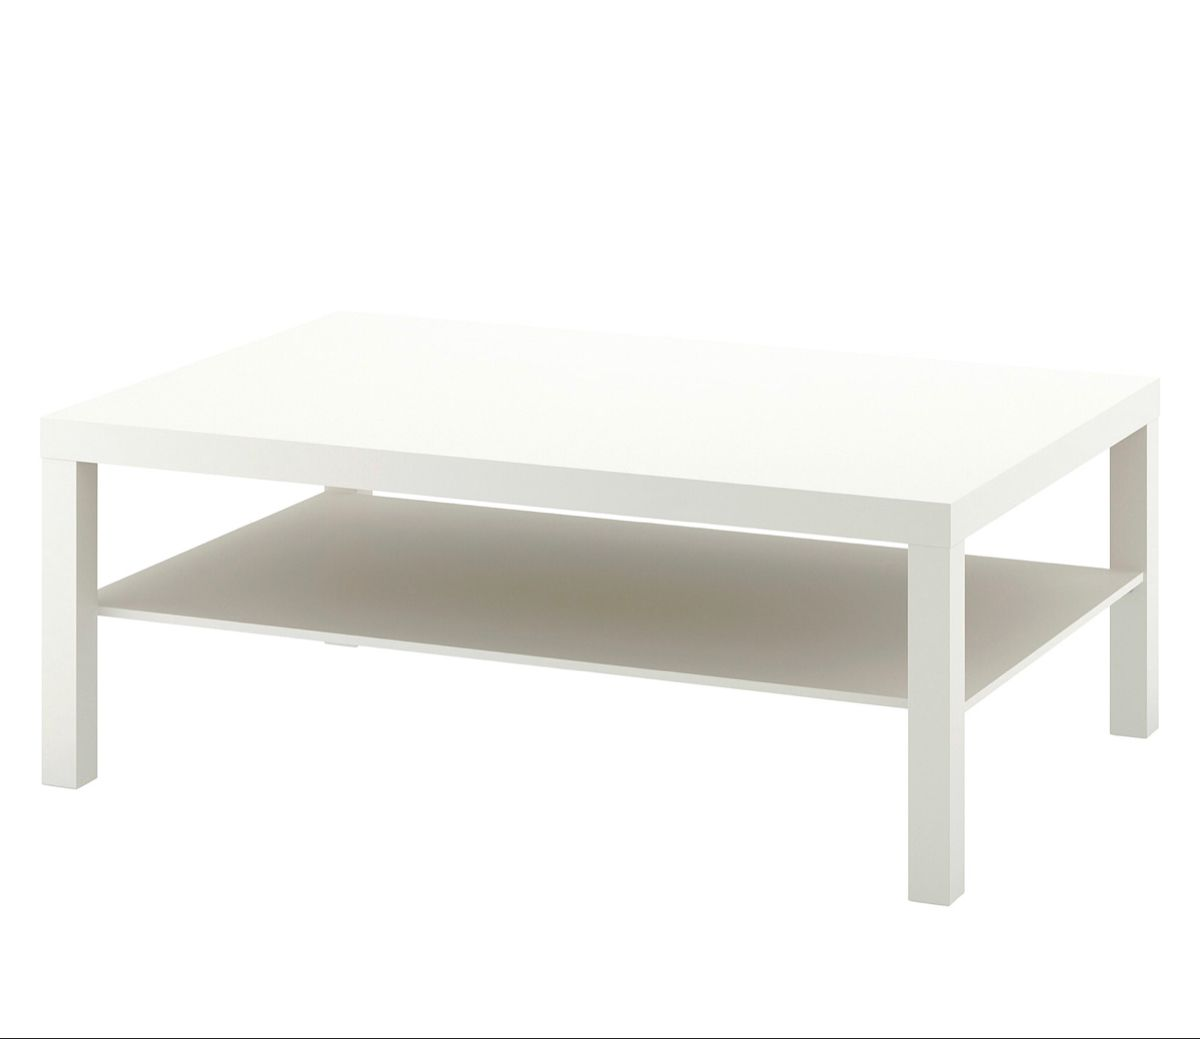 Lack Coffee Table White 46 1 2x30 3 4 Ikea In 2021 Coffee Table Lack Coffee Table Coffee Table White [ 1039 x 1200 Pixel ]